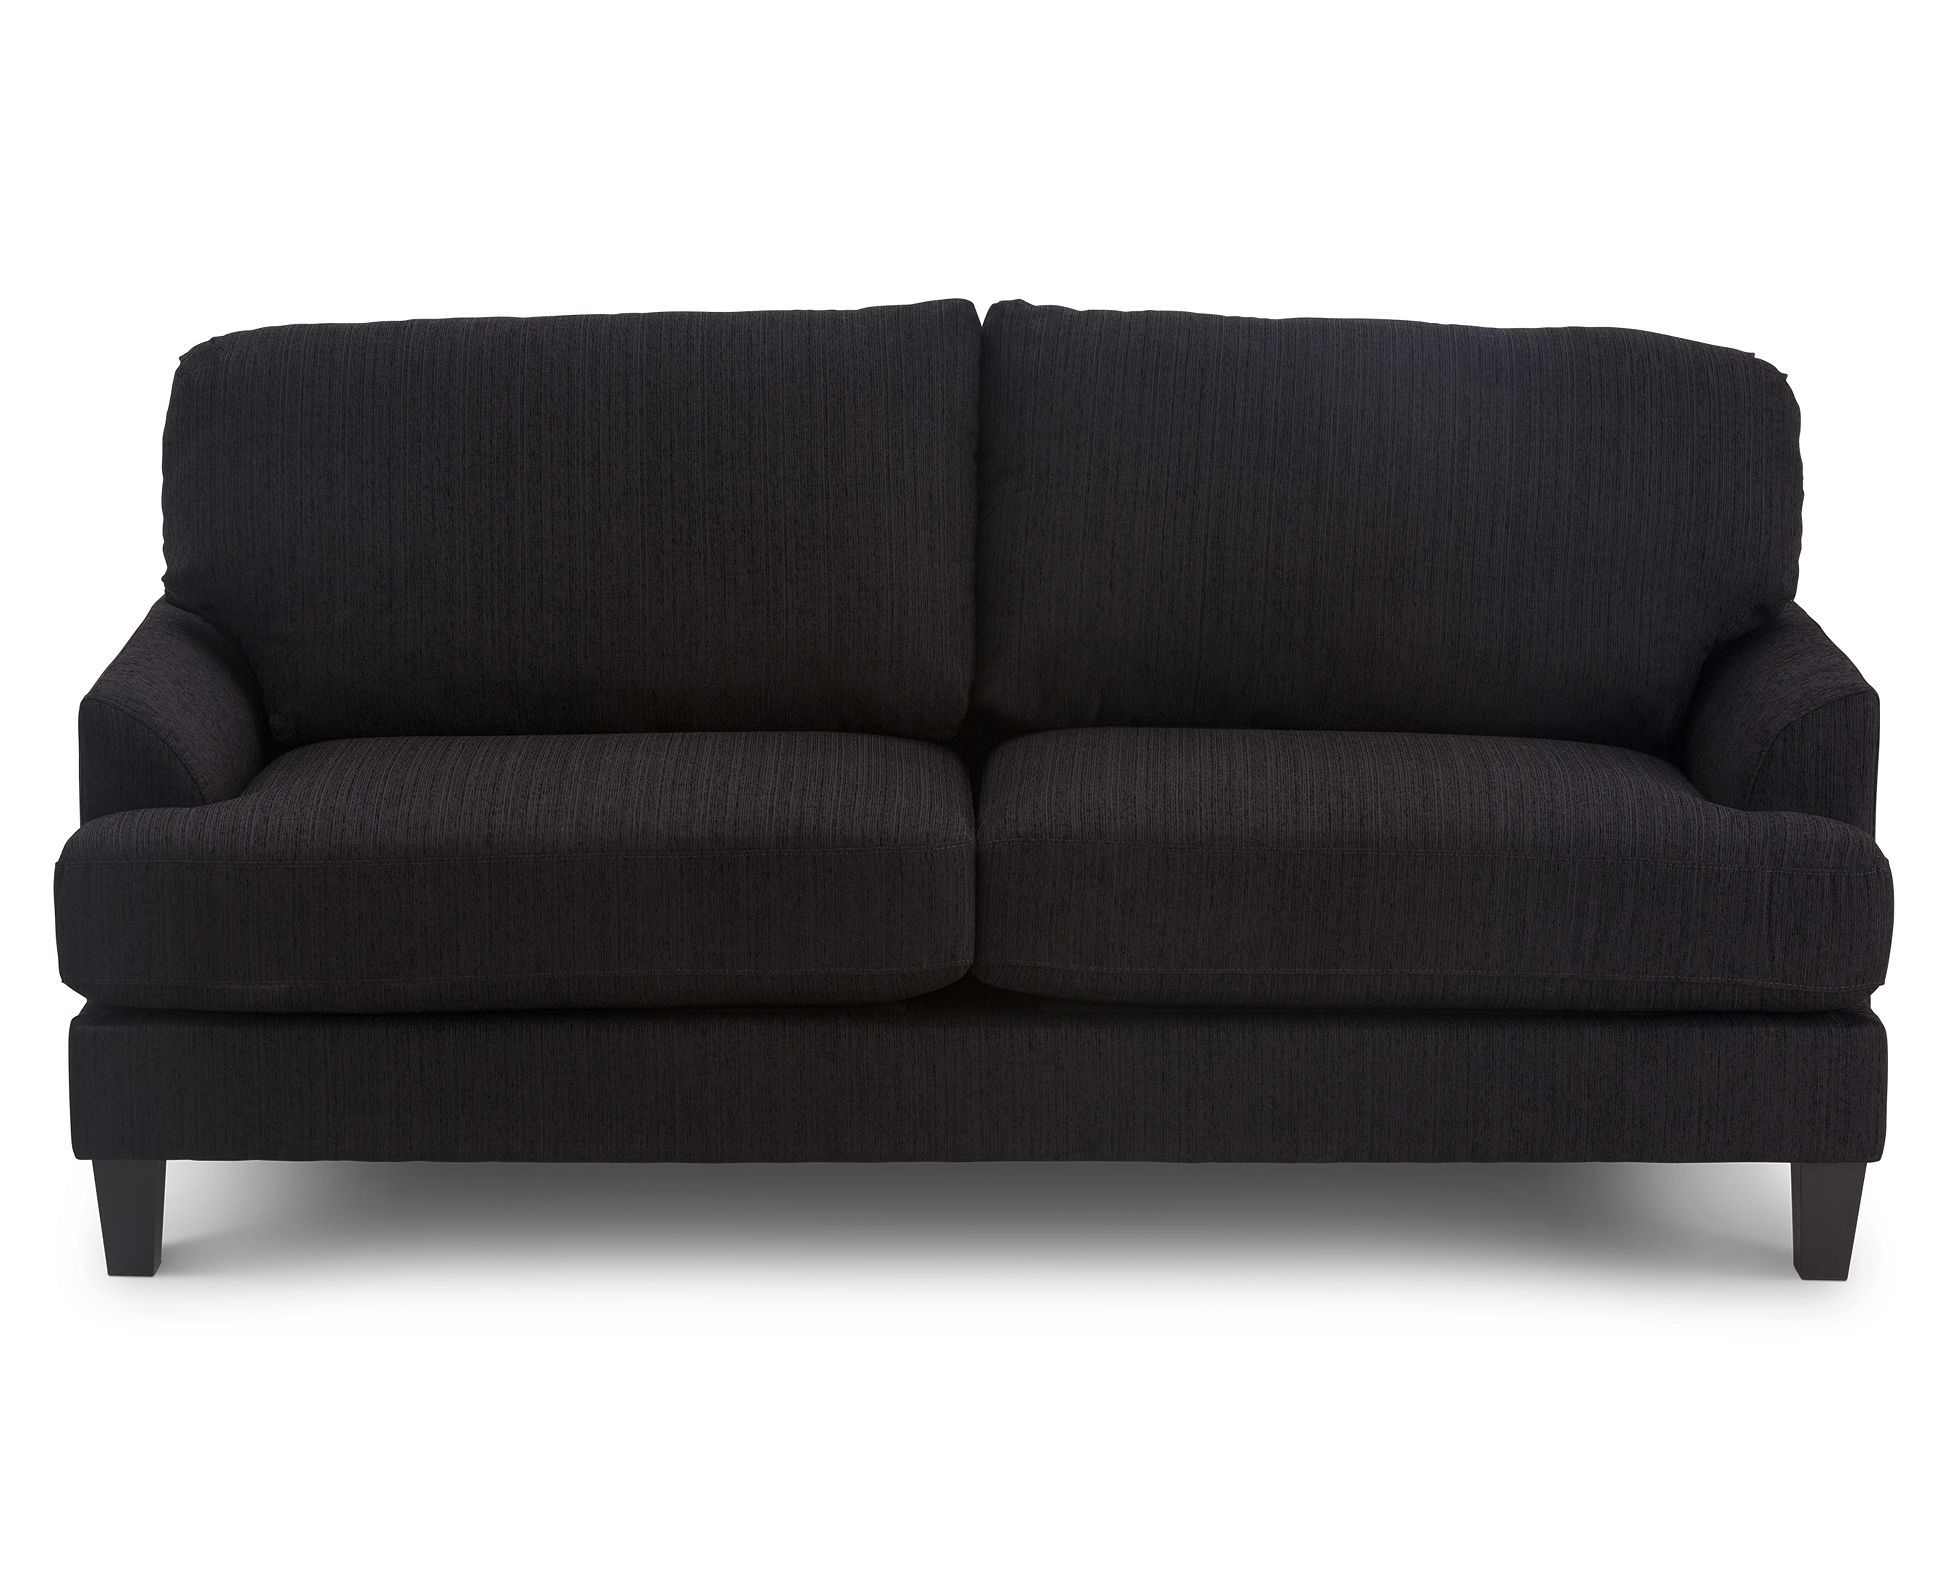 Sierra Sofa Furnishes Your Living Room